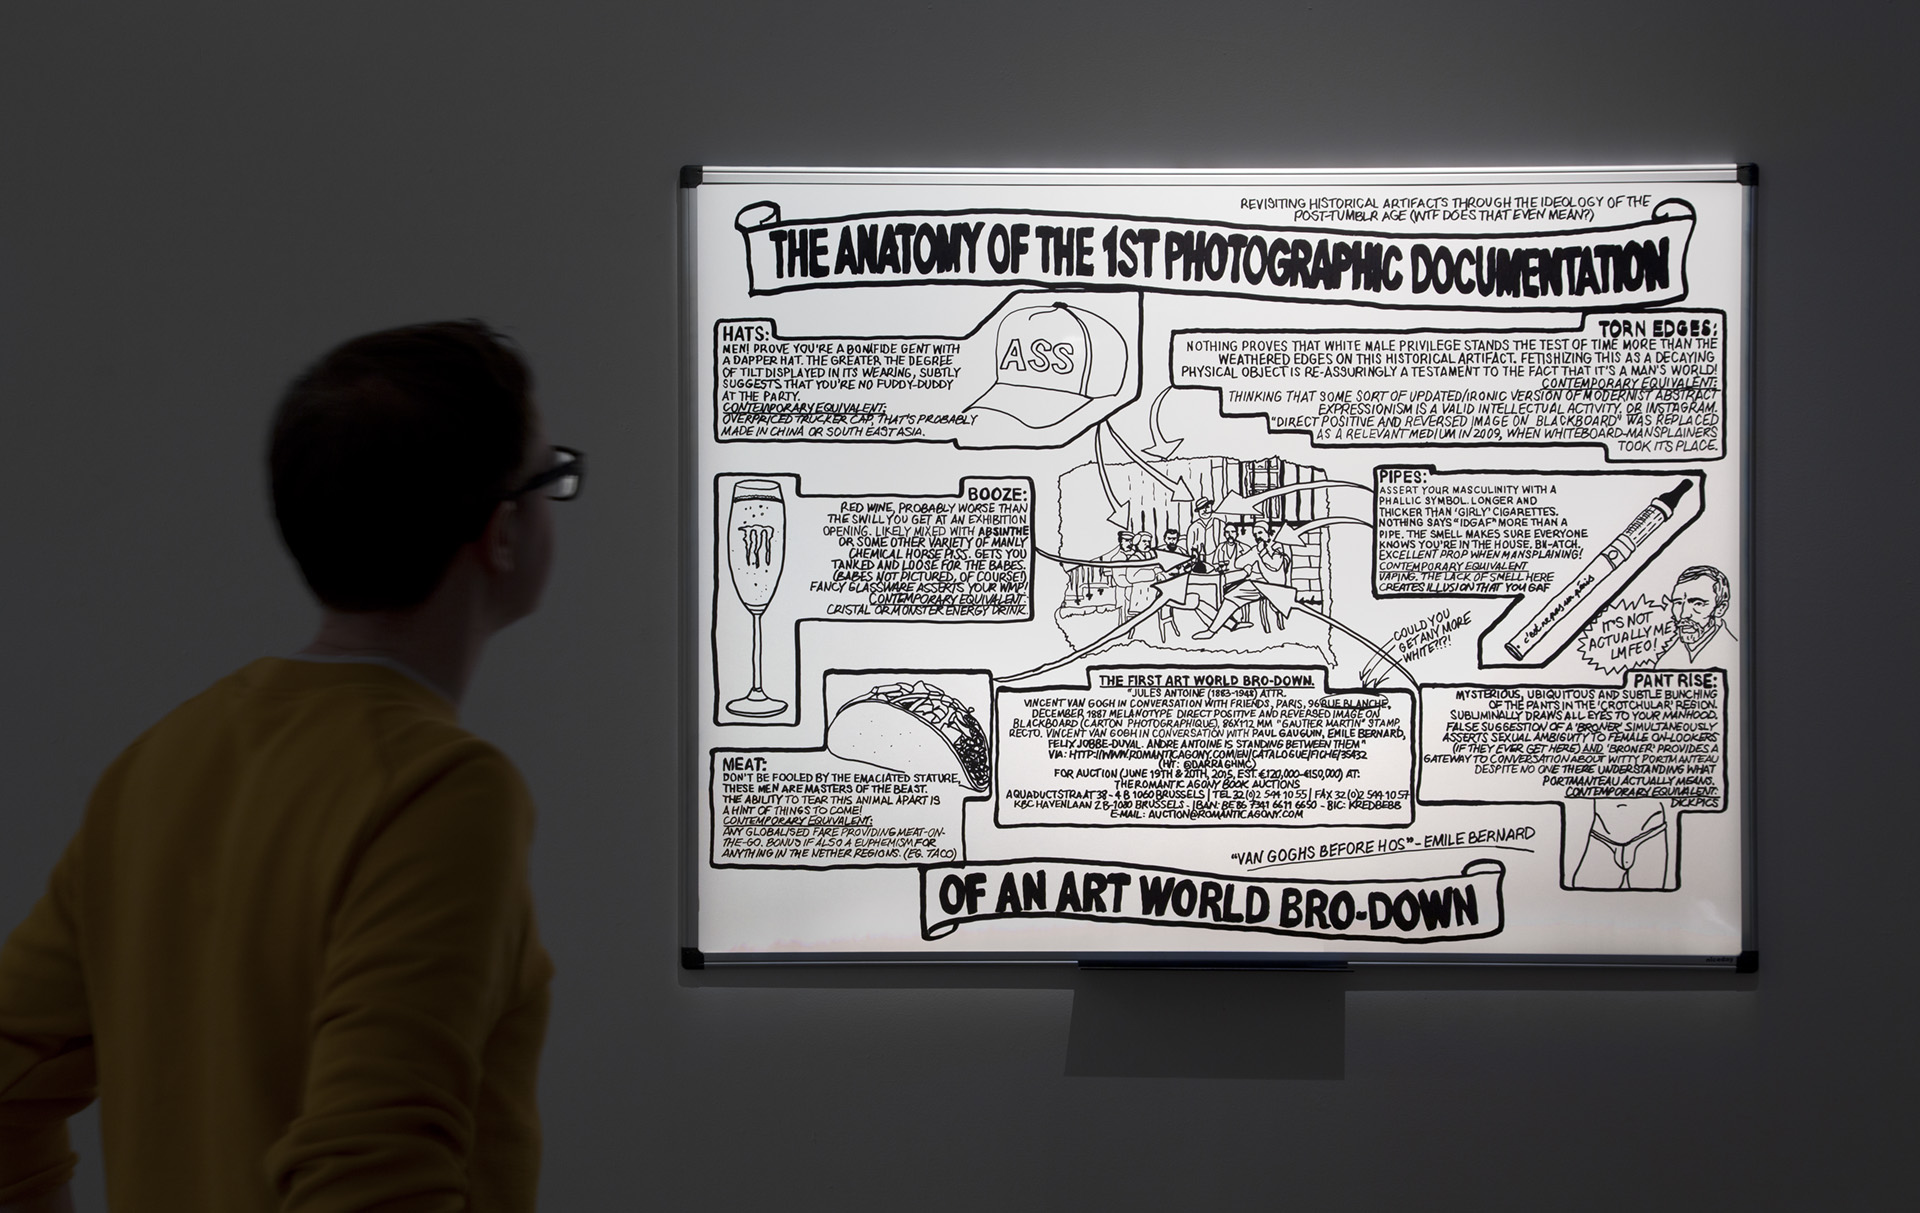 he Anatomy of the 1st Photographic Documentation of an Art World Bro-down (2015)